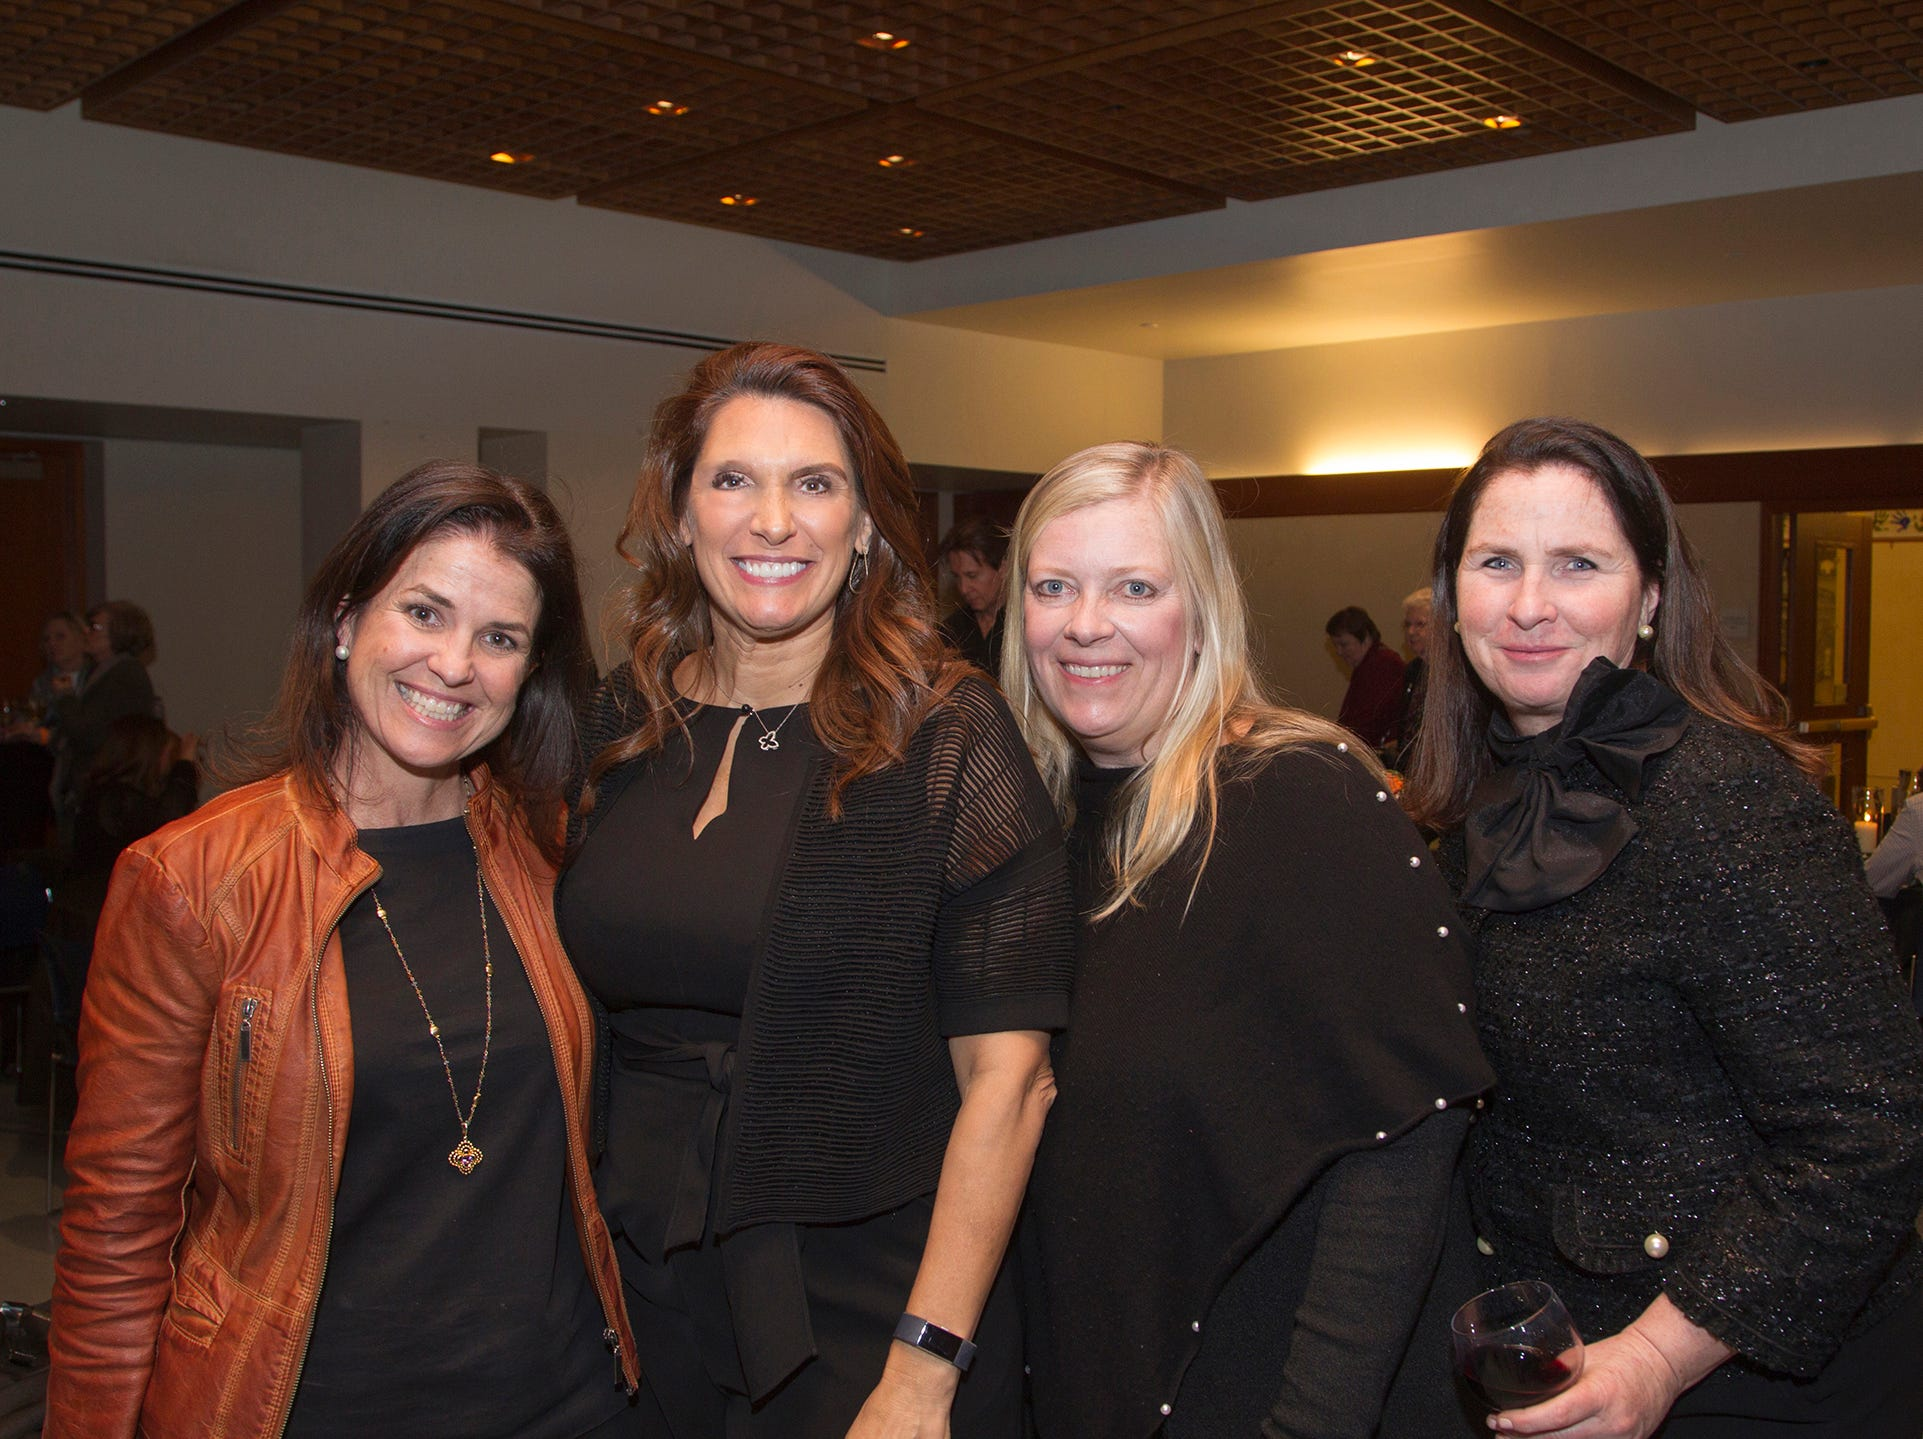 Patti Reynolds DePhillips, Christine Callahan, Elaine Young, Maureen McLoughlin. Anthony Kearns benefit concert to benefit Julia's Butterfly Foundation at West Side Presbyterian Church in Ridgewood. 3/23/2019